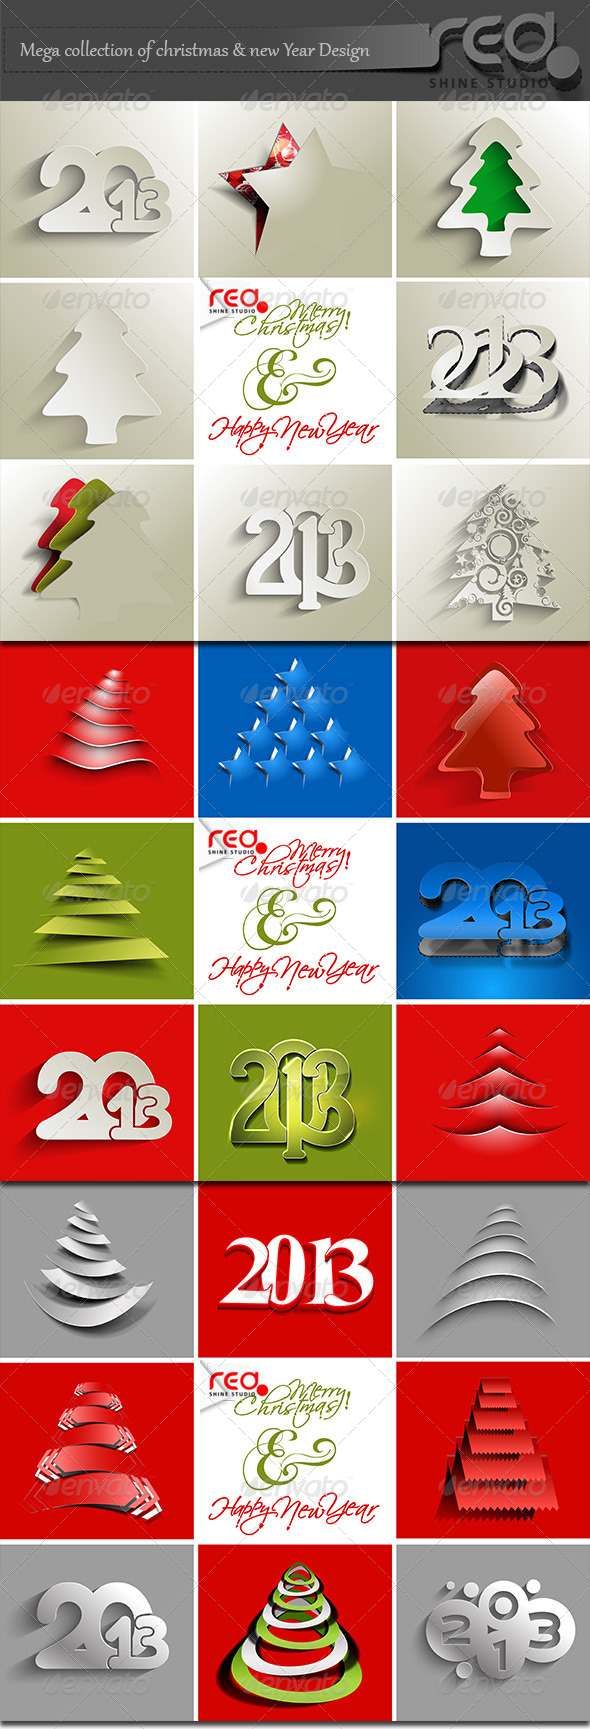 GraphicRiver Mega Collection of Christmas & New Year Design 4074092